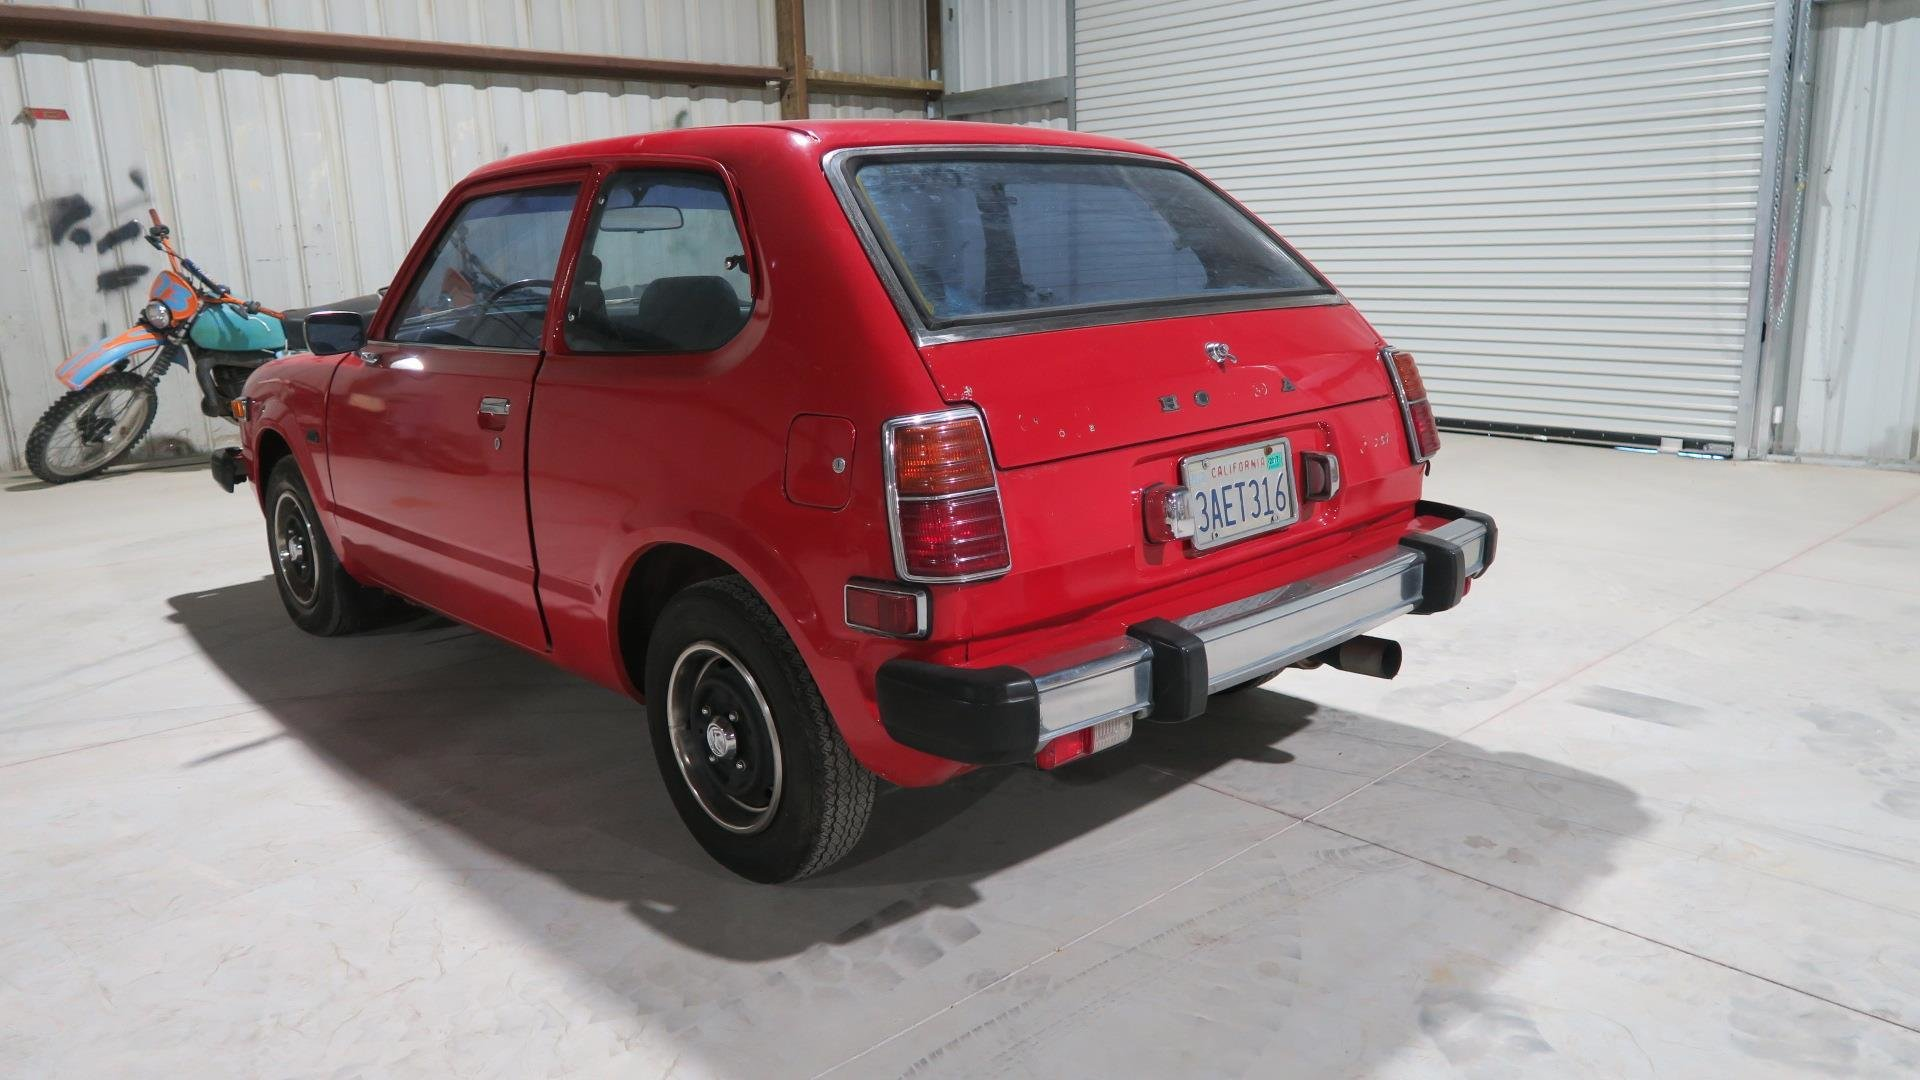 1978 Honda CVCC Dry Cali Clean Car Red(~)Black Manual  $6.9k For Sale (picture 3 of 6)